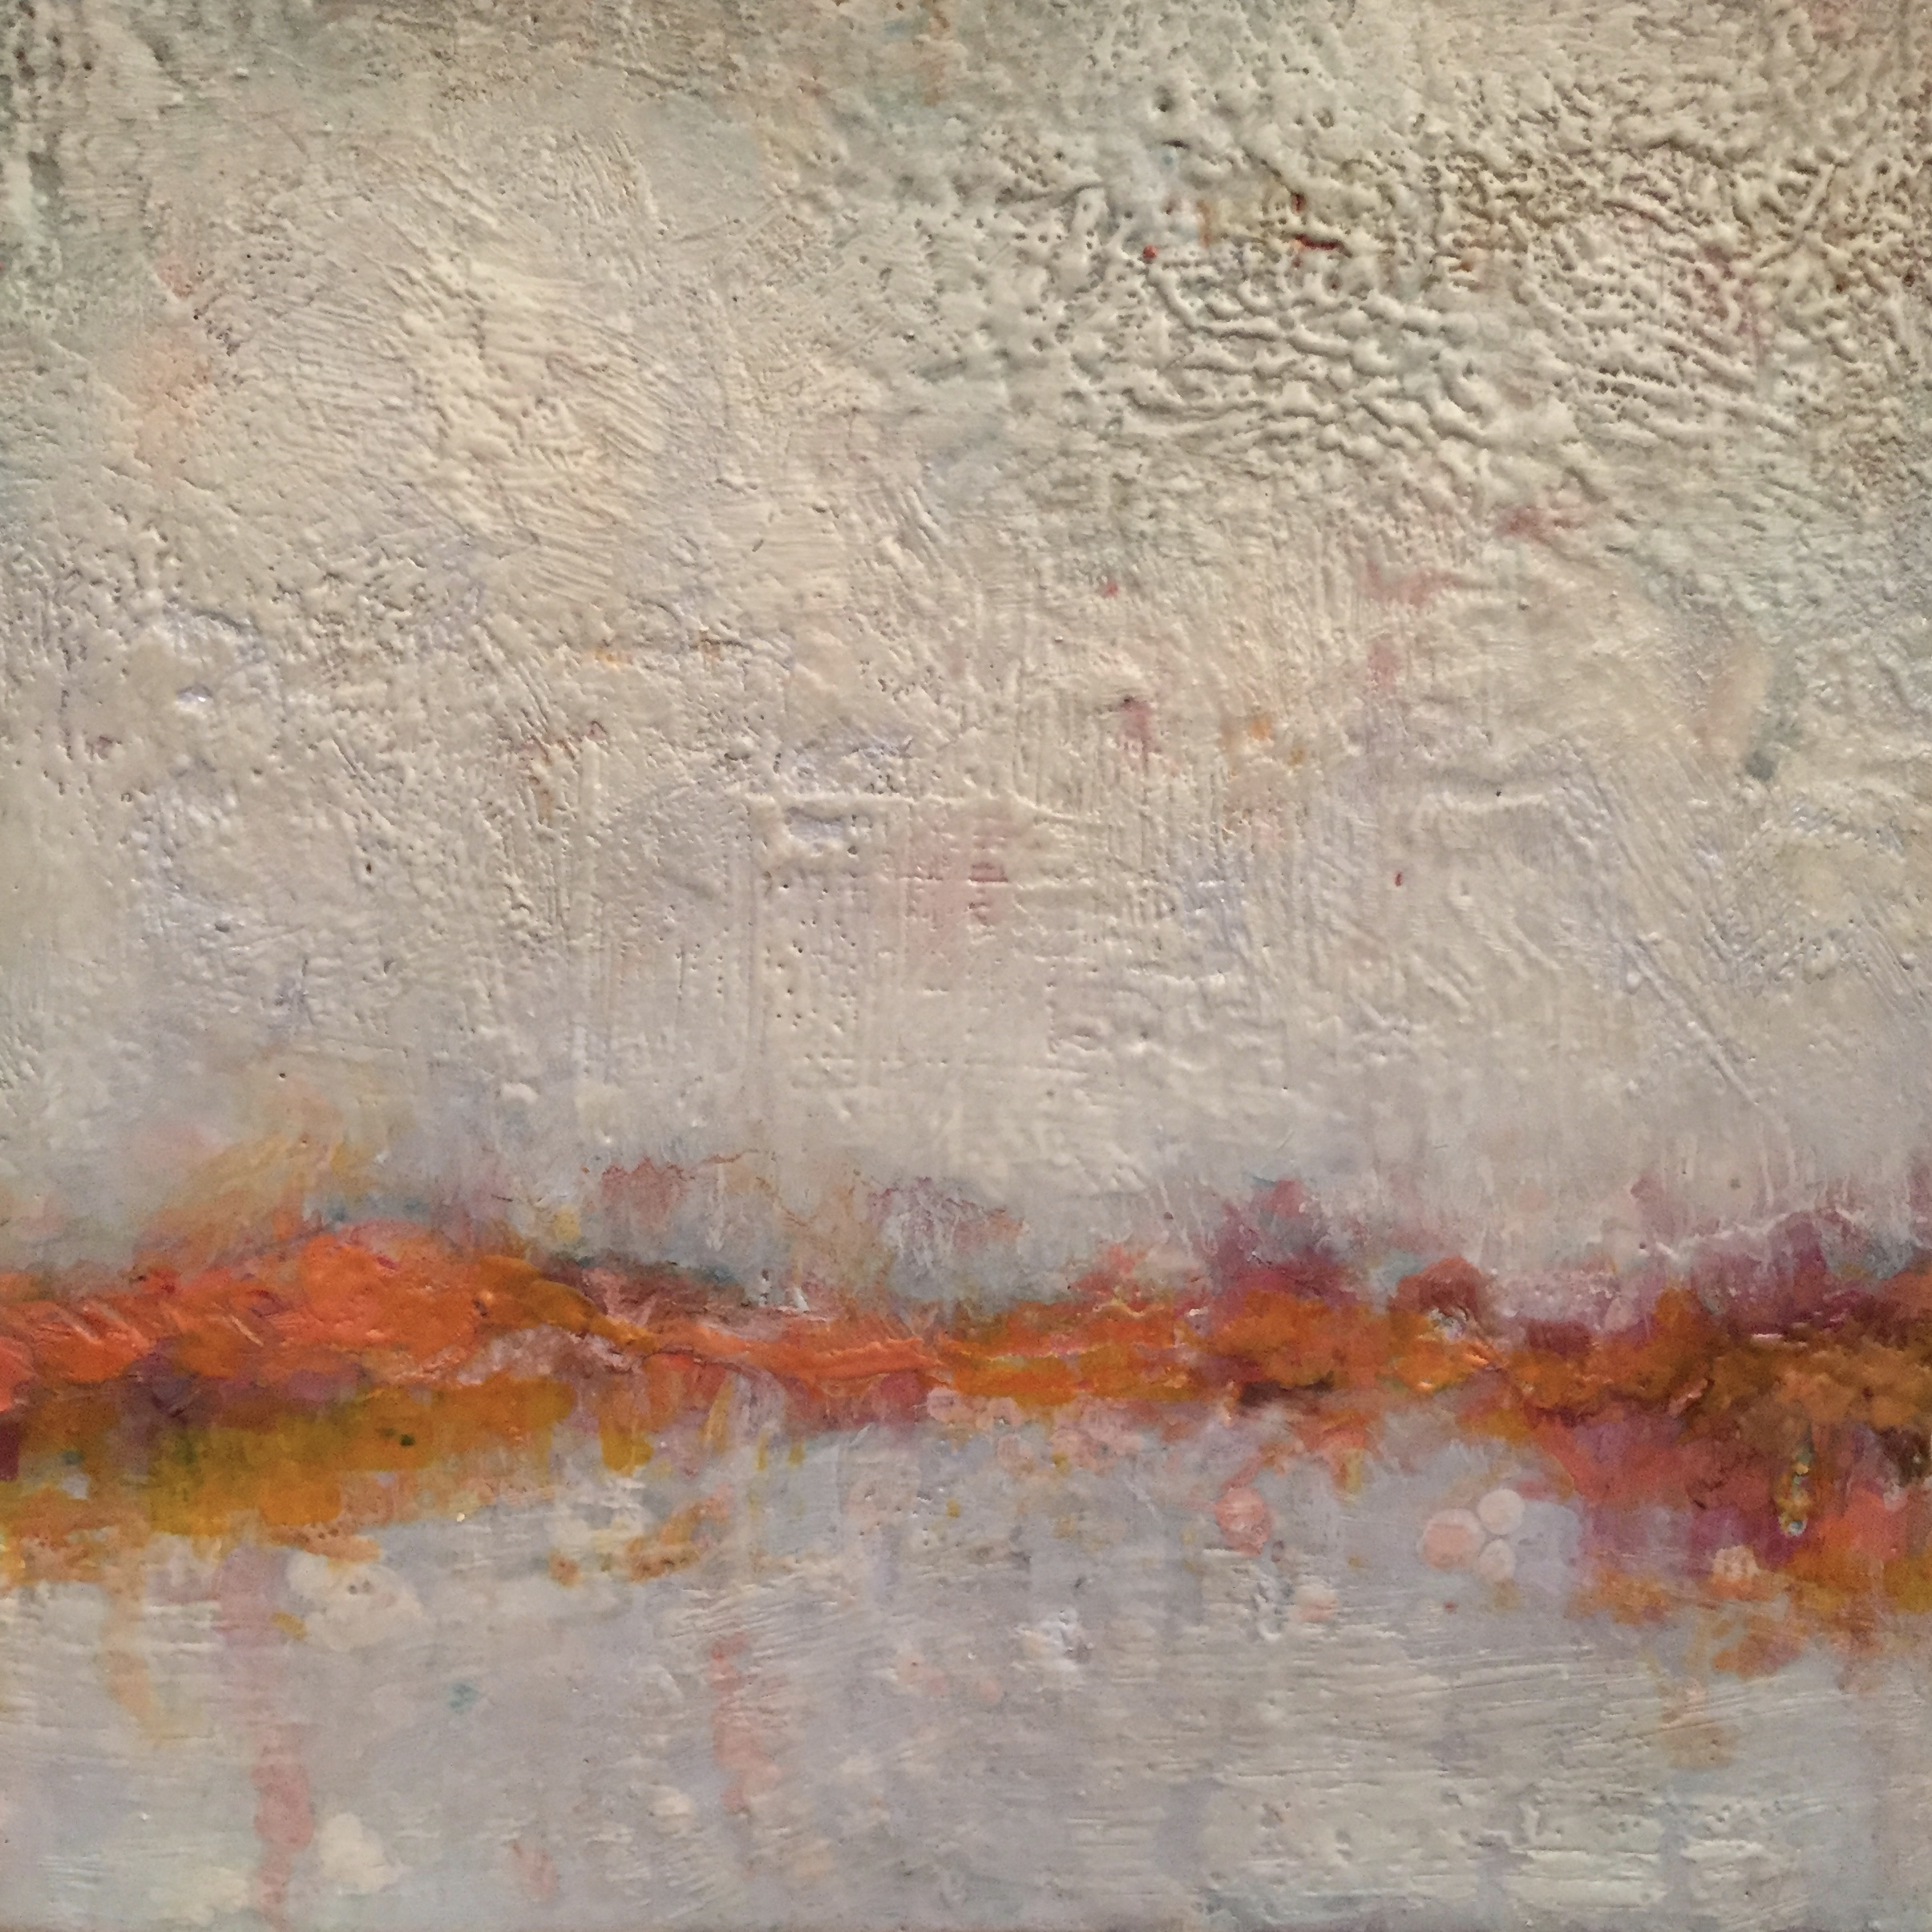 encaustic abstract landscape